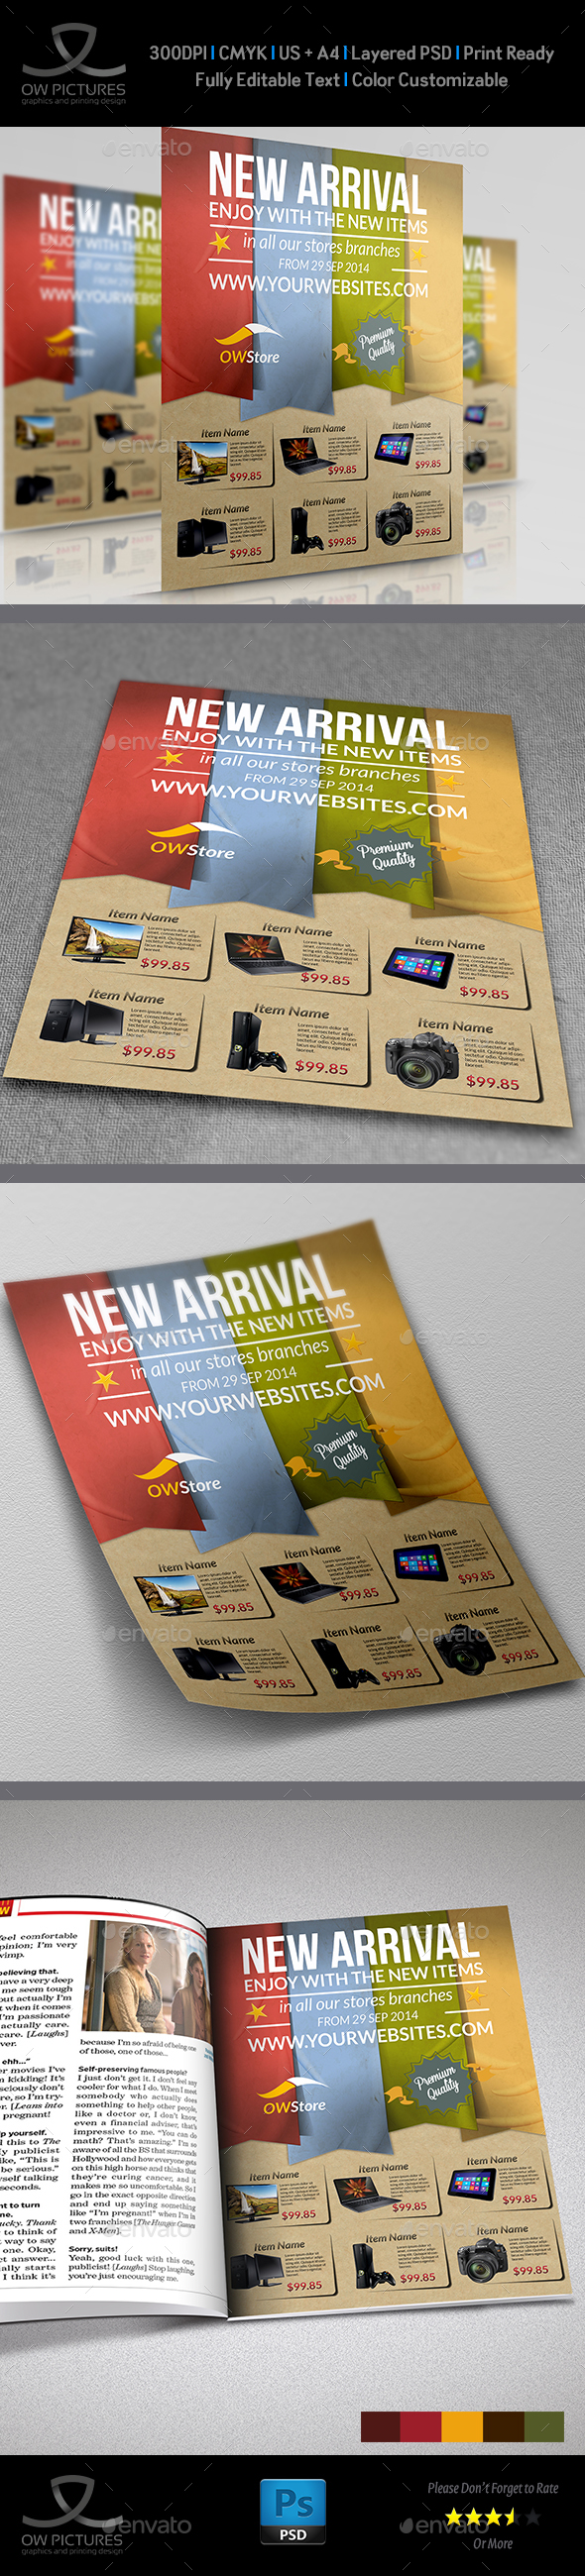 New Arrival Products Flyer Template - Commerce Flyers